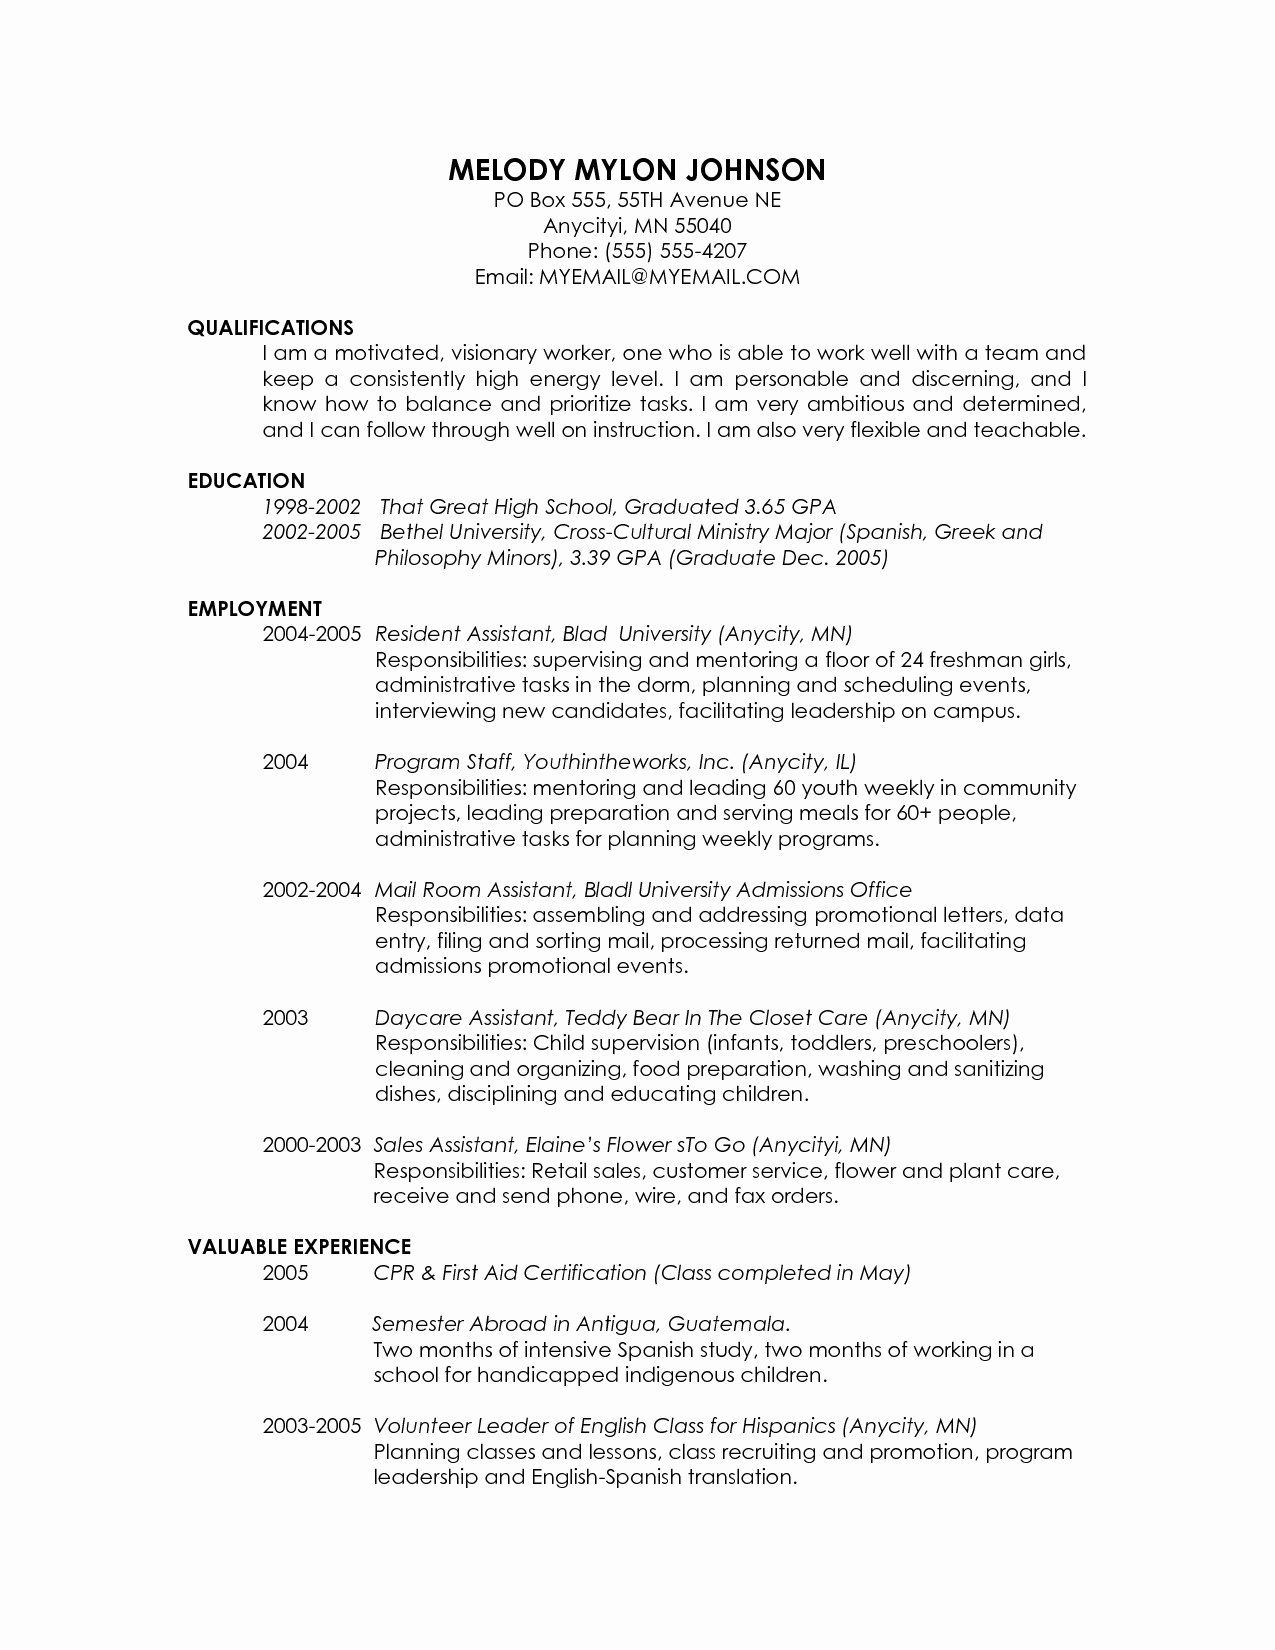 Graduate School Resume Template Lovely Graduate School Admissions Resume Resume Ideas